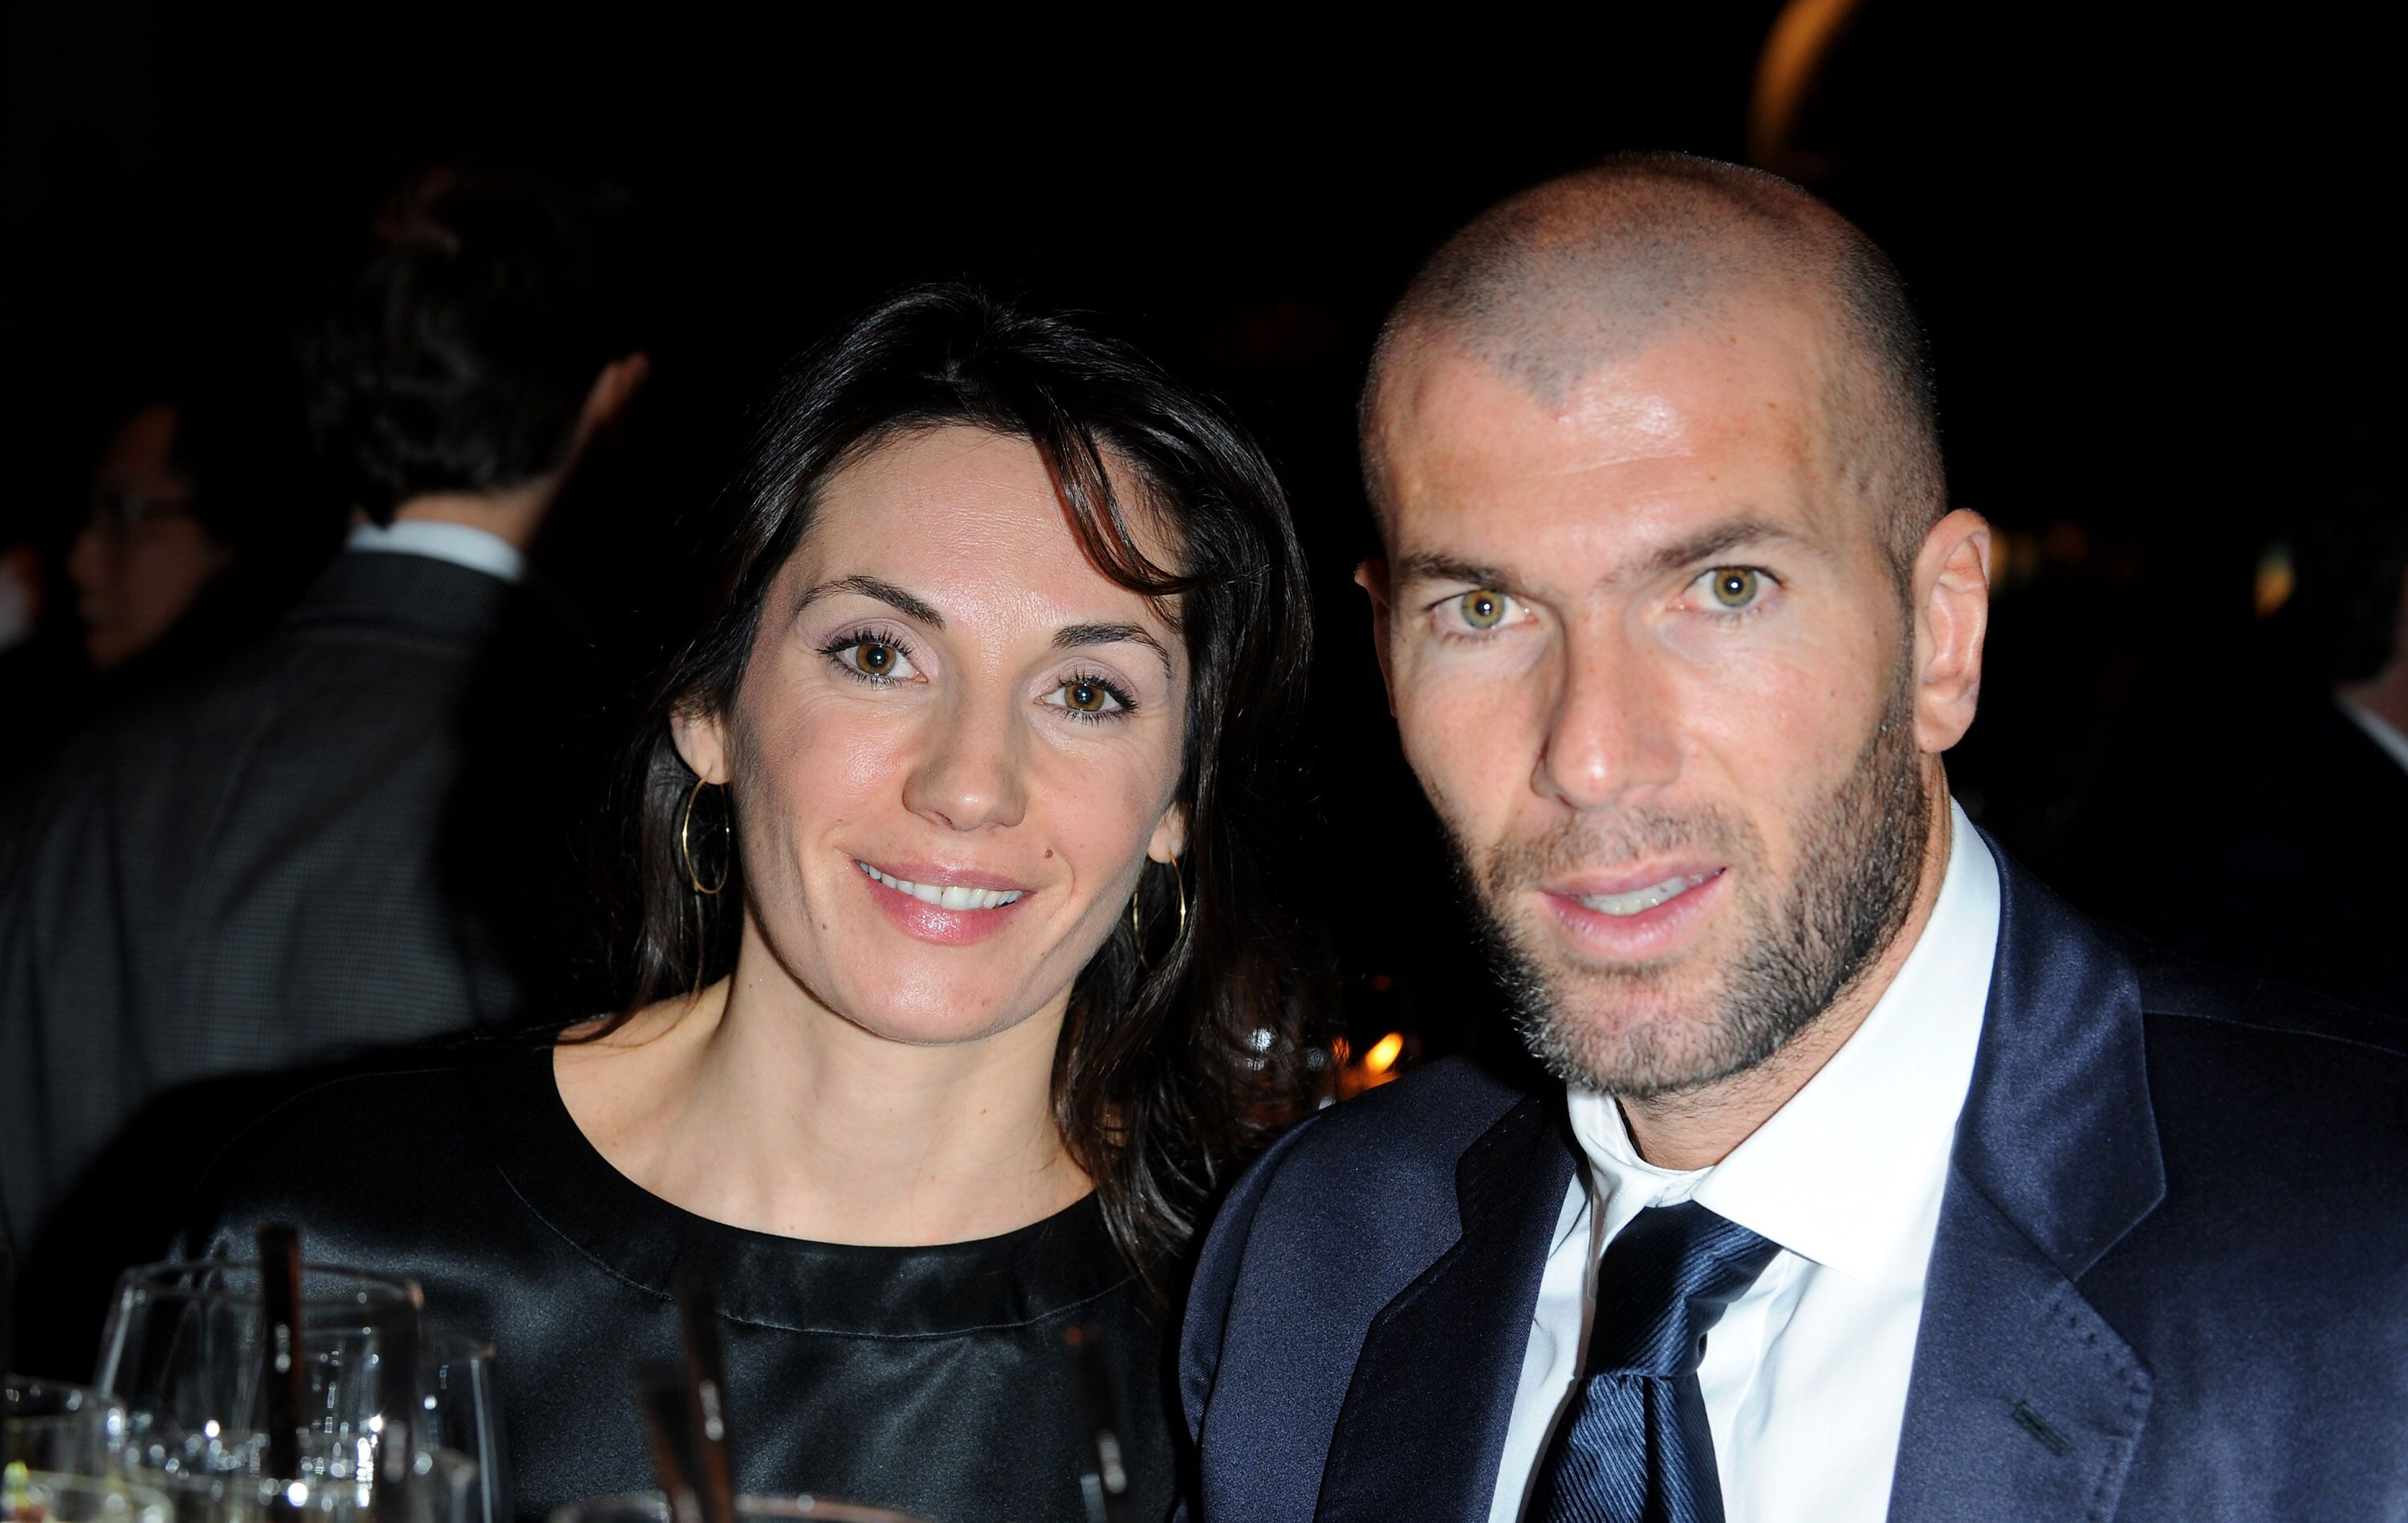 Véronique Zidane et Zinedine Zidane assistent à la fête de la CBI à Schaffhouse lors du Salon International de la Haute Horlogerie à Geneva Palexpo. | Photo : GettyImage